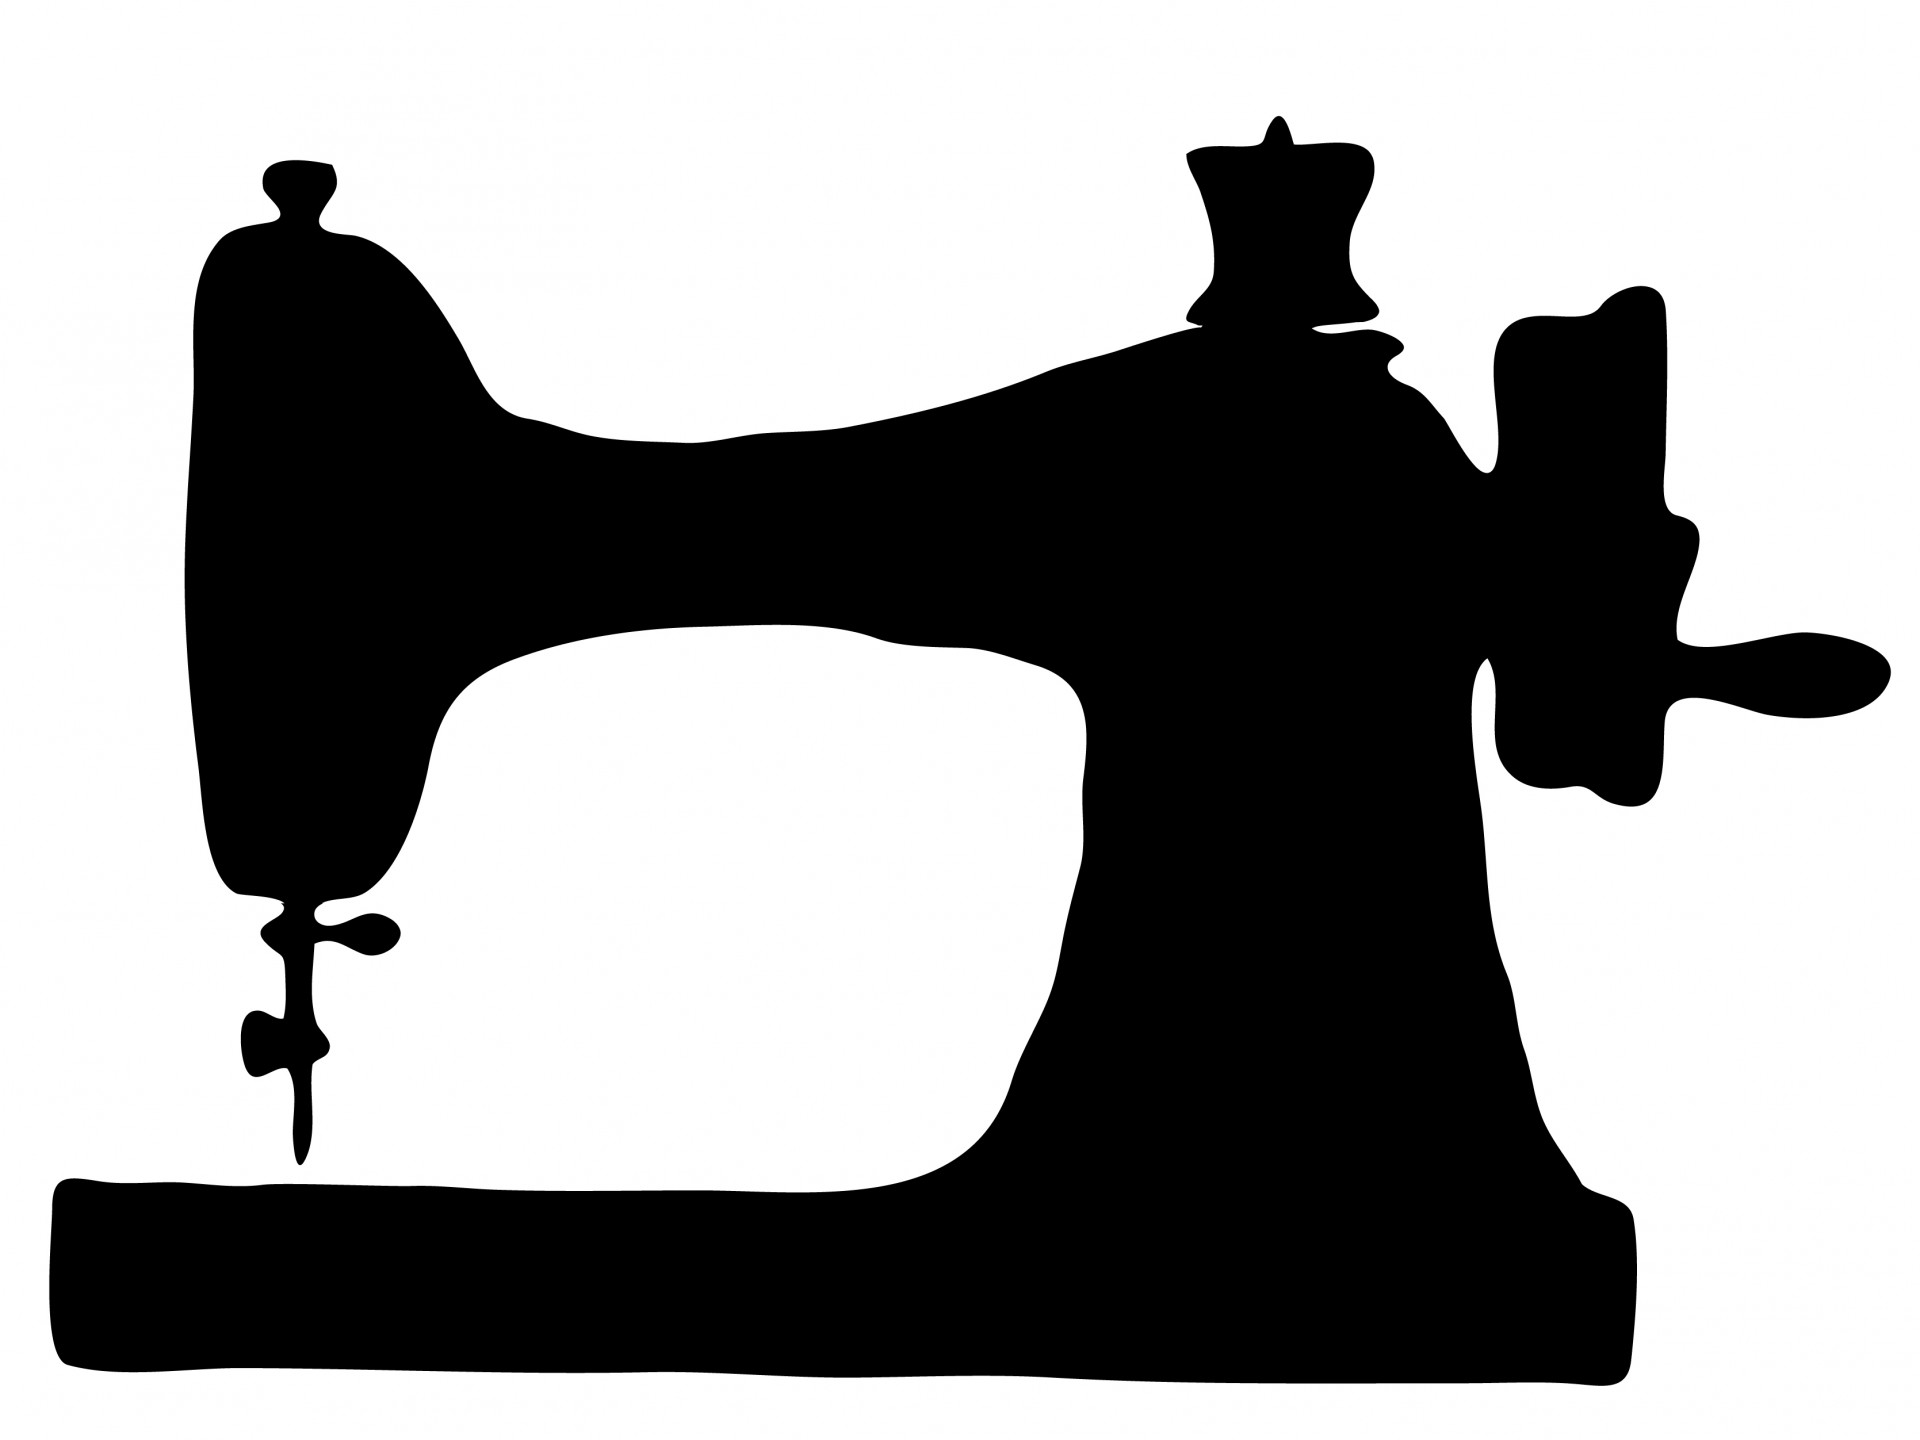 Sewing Machine Clipart Image.